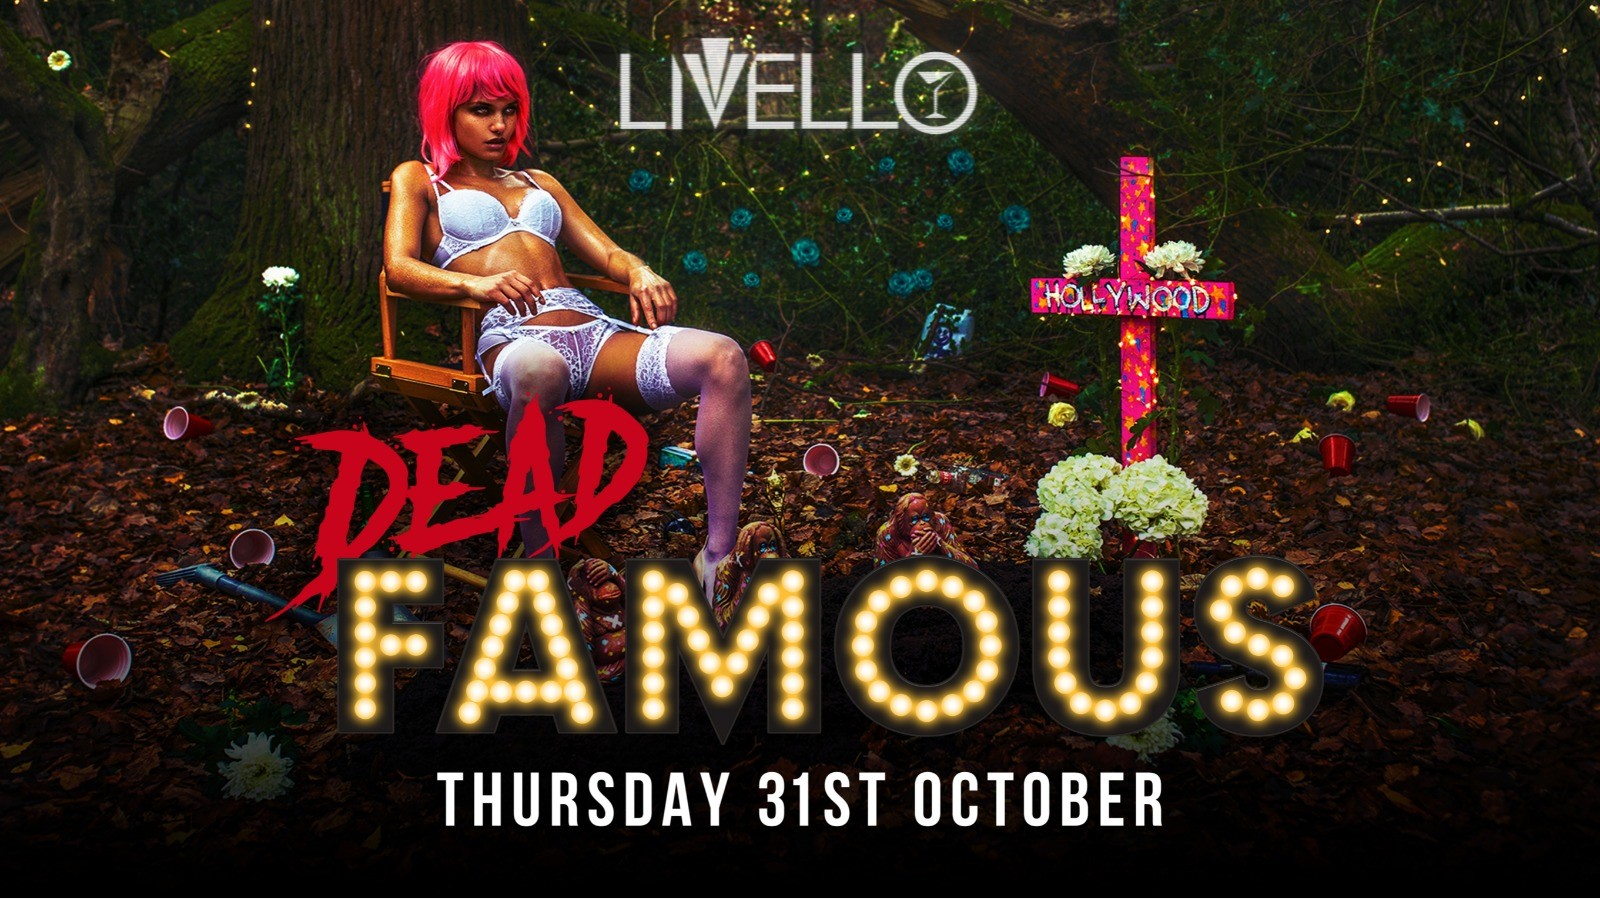 DEAD Famous - Halloween at Livello